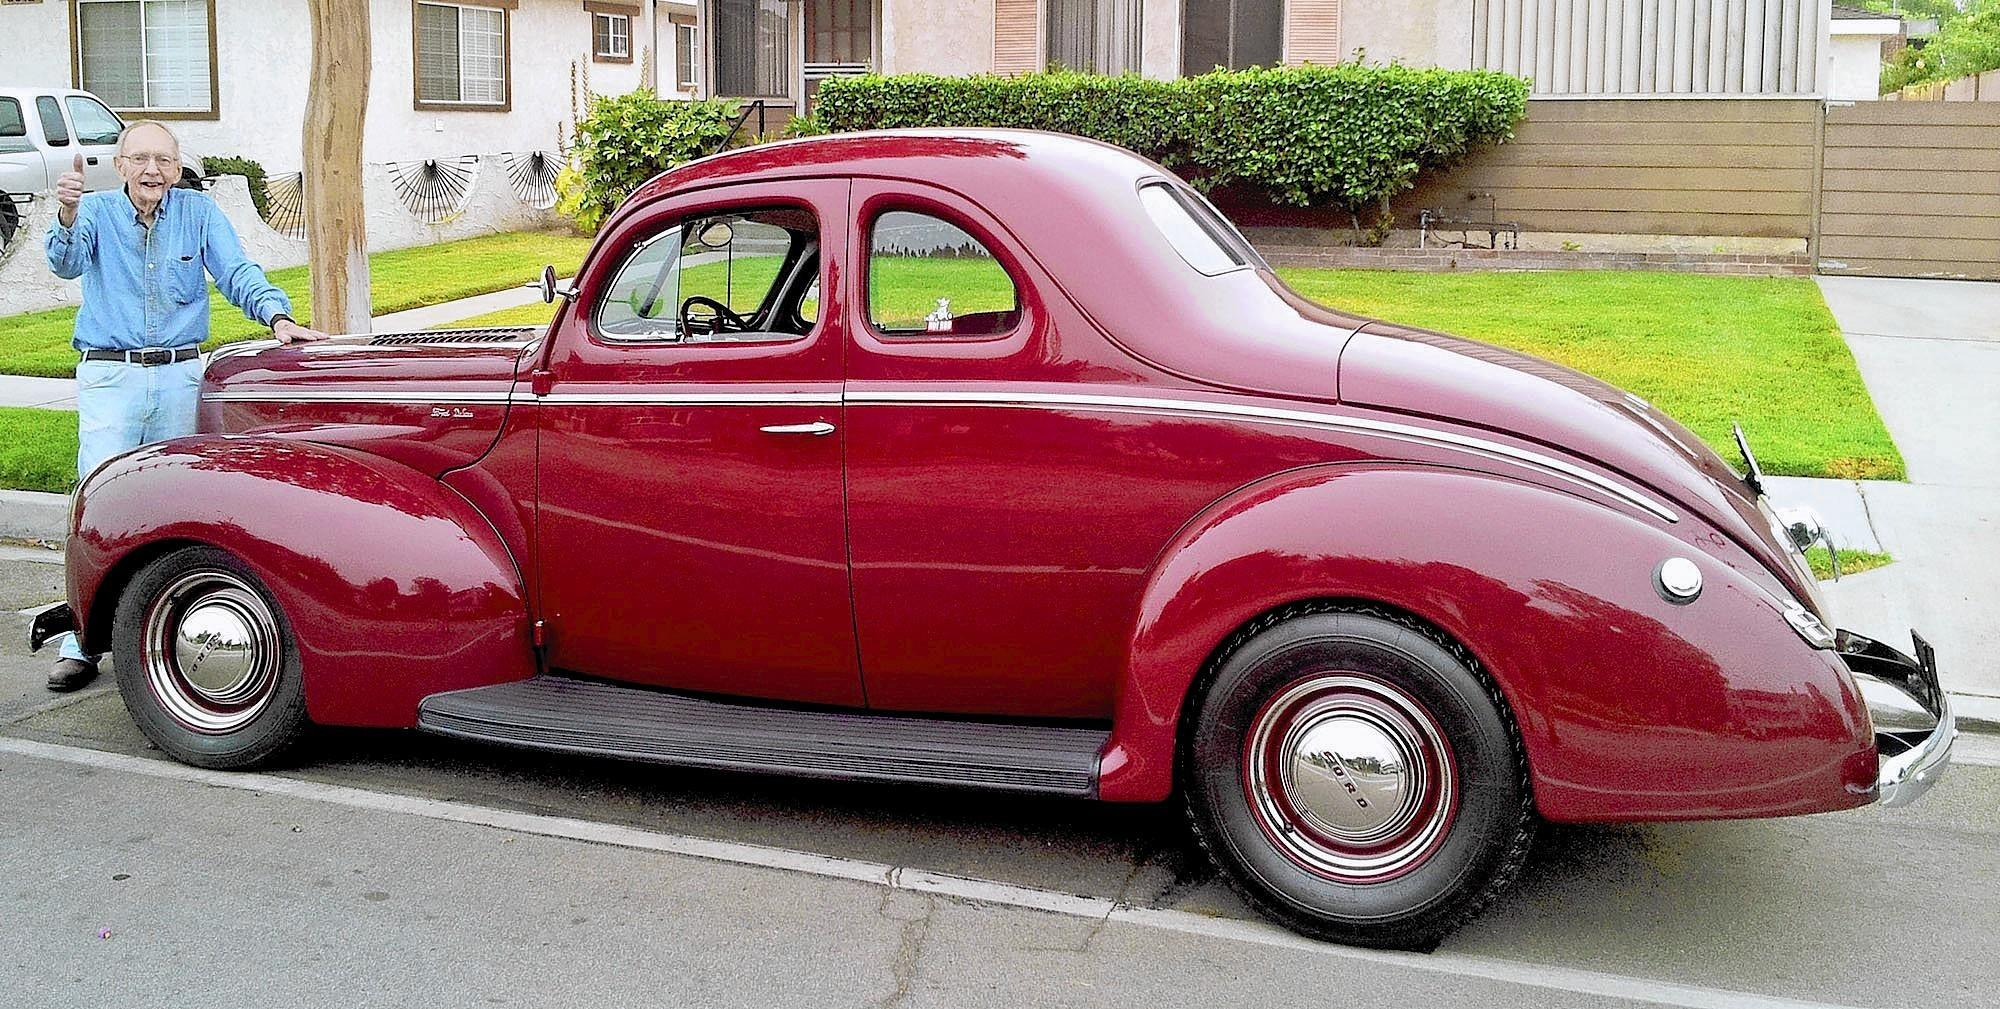 Hot rod legend Tom Medley, a longtime Burbank resident who passed away on Sunday, March 1, pictured with his restored 1940 Ford Coupe in July 2013.